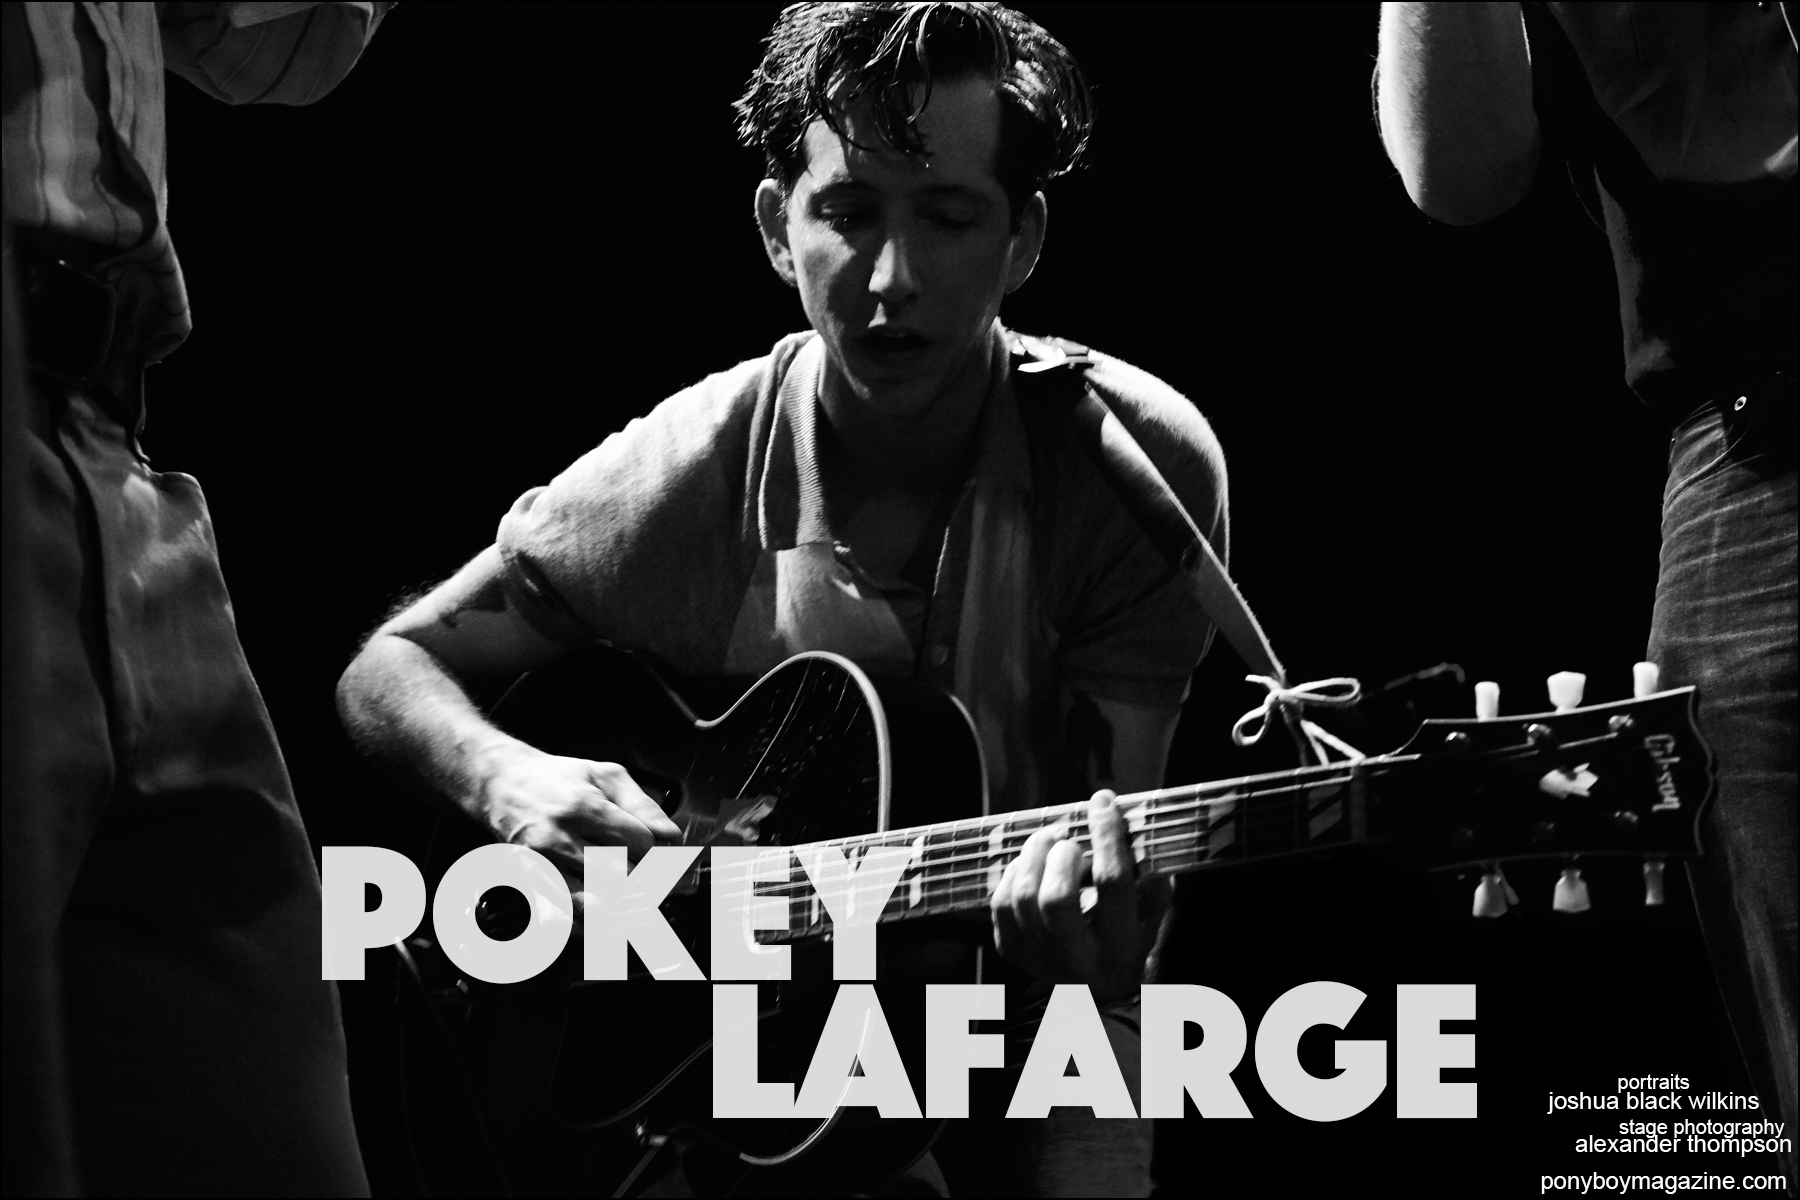 Musician Pokey LaFarge photographed at the Bowery Ballroom in New York City. Photographed by Alexander Thompson for Ponyboy magazine.